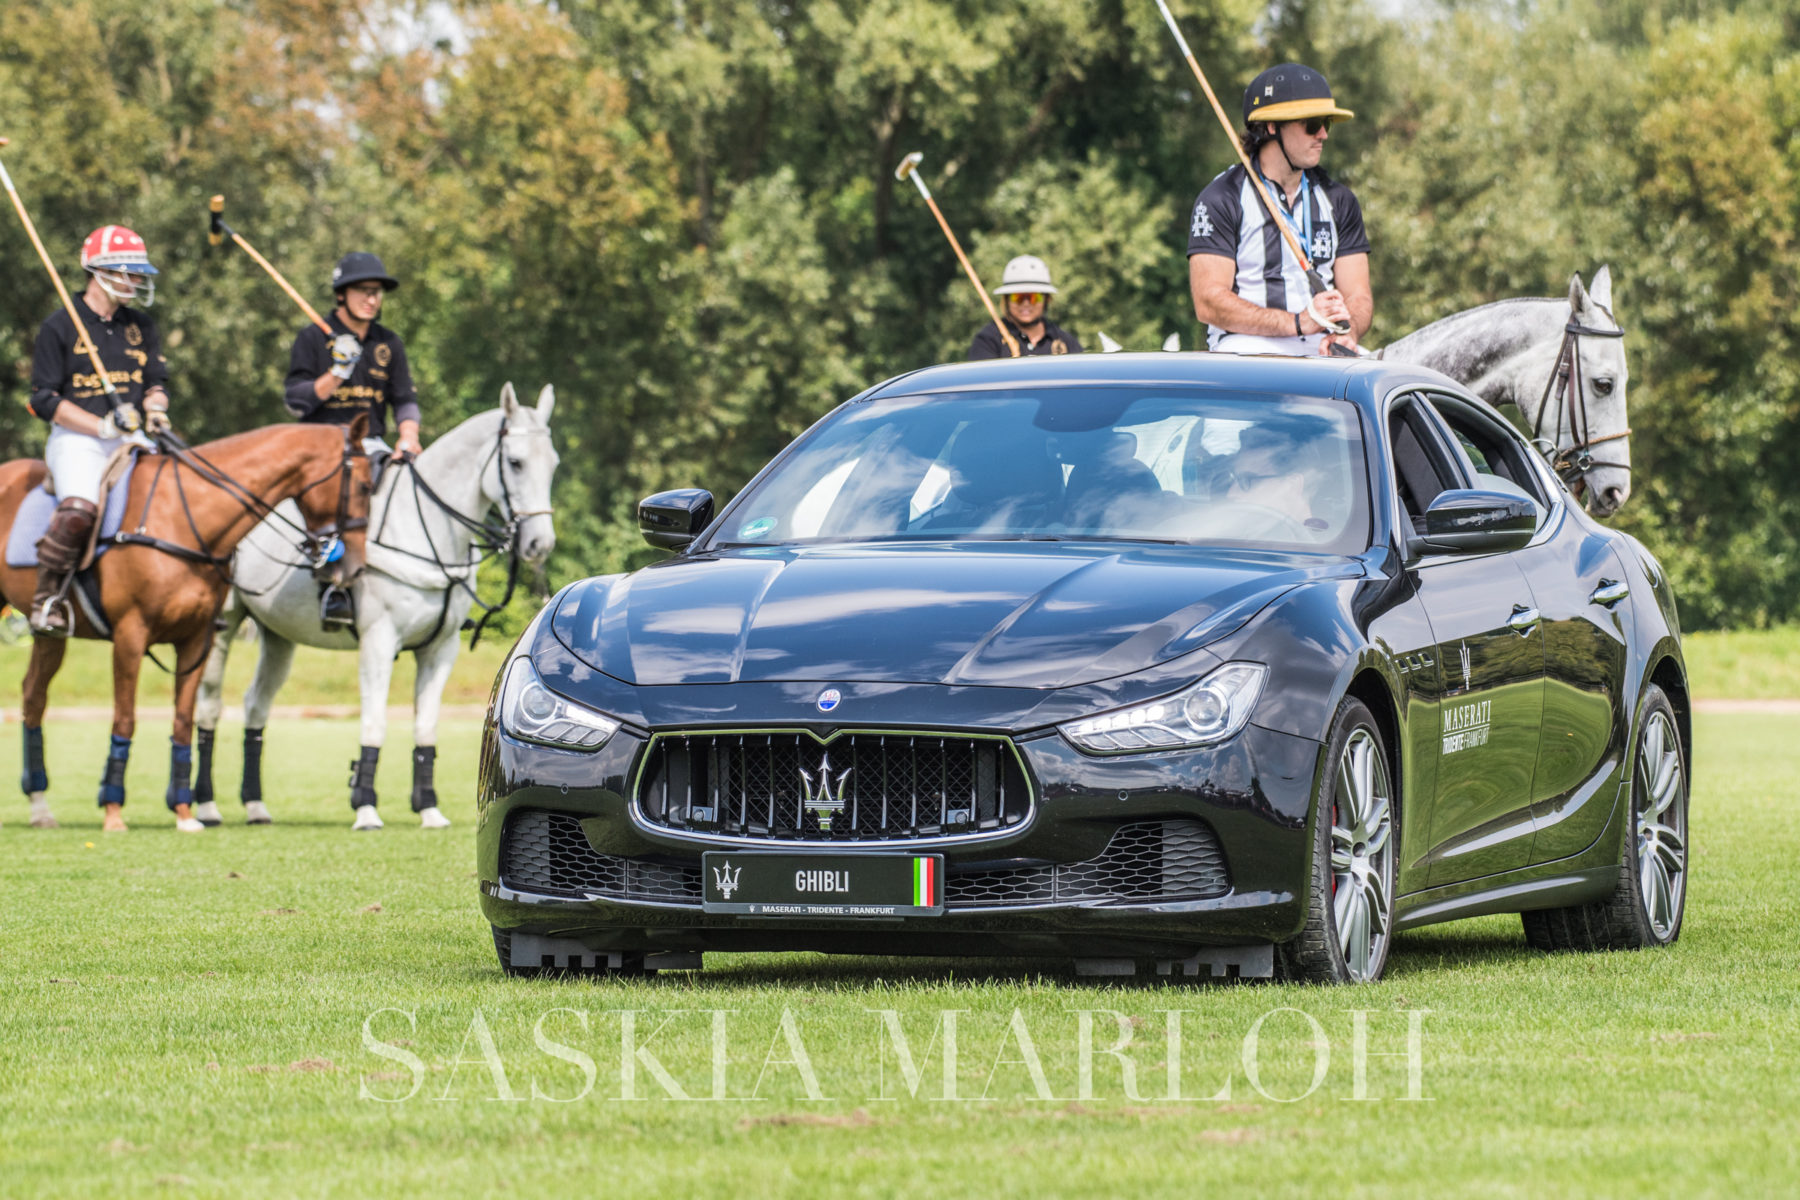 POLO-GOLD-CUP-FRANKFURT-2017-PHOTO-FOTO-SASKIA-MARLOH-edit-01-2